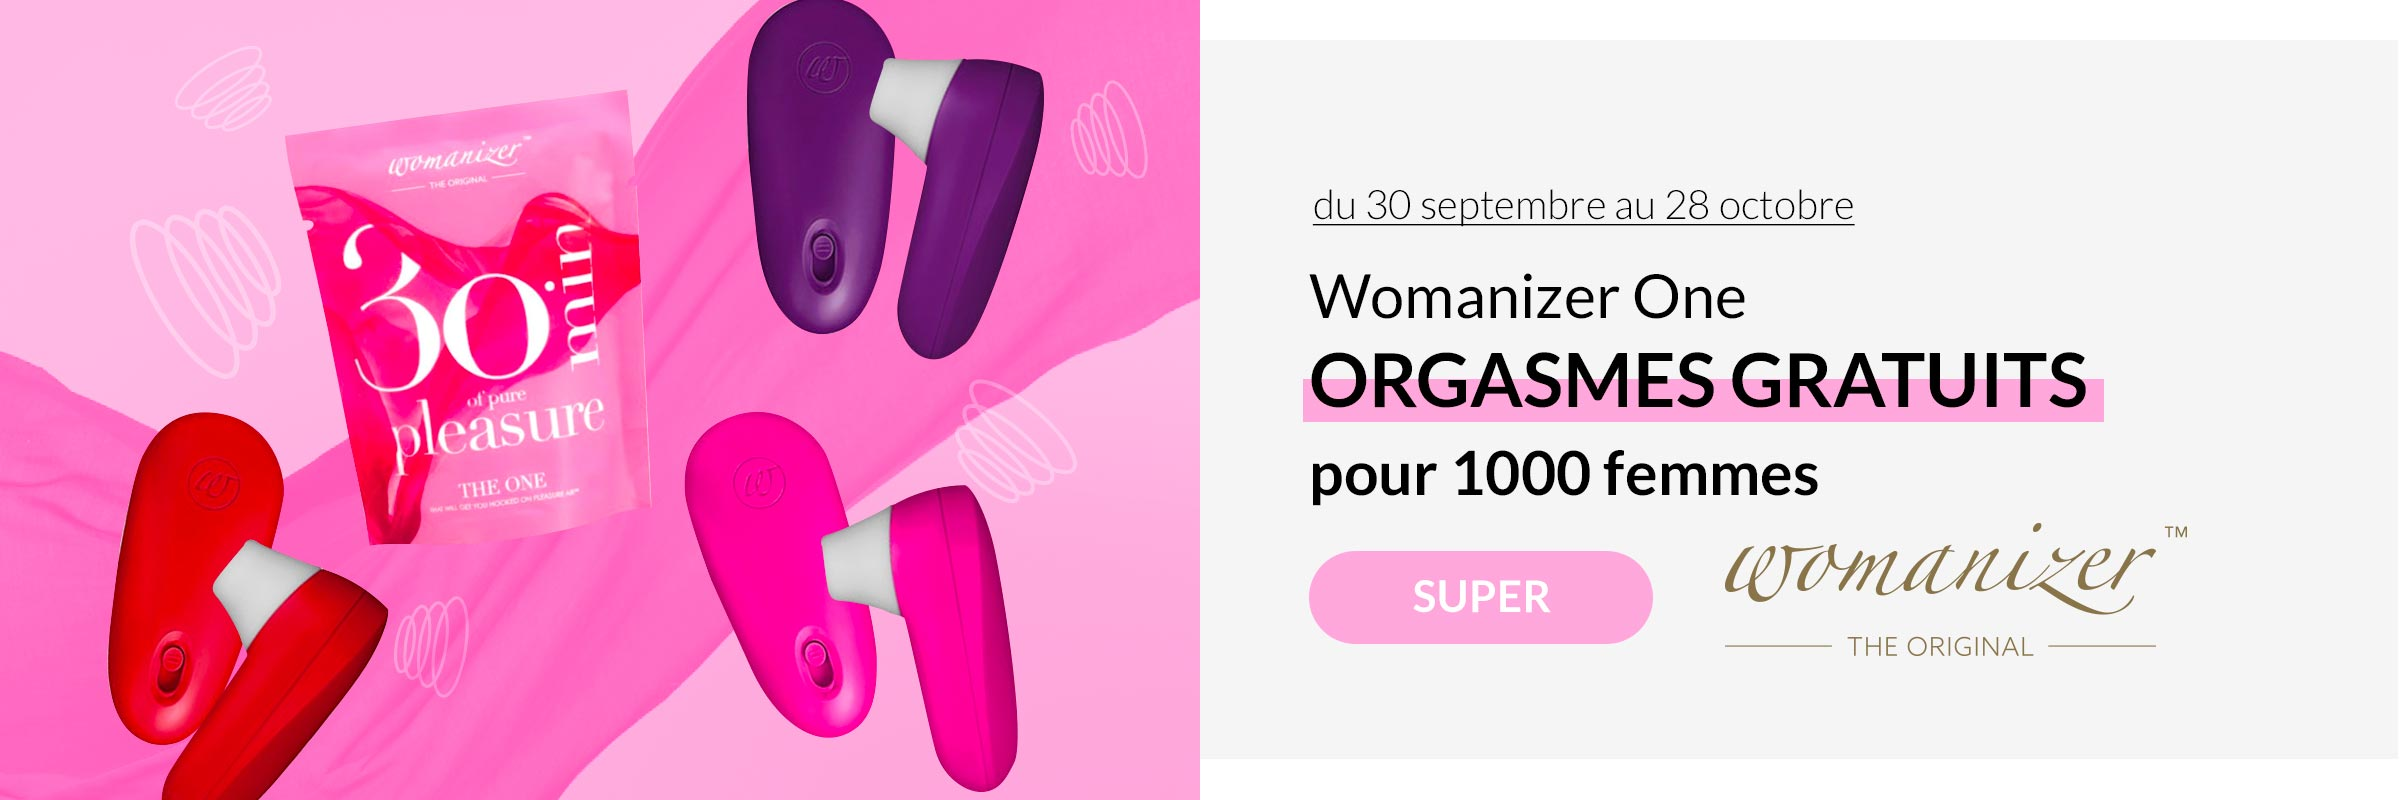 Womanizer ONE GRATUIT